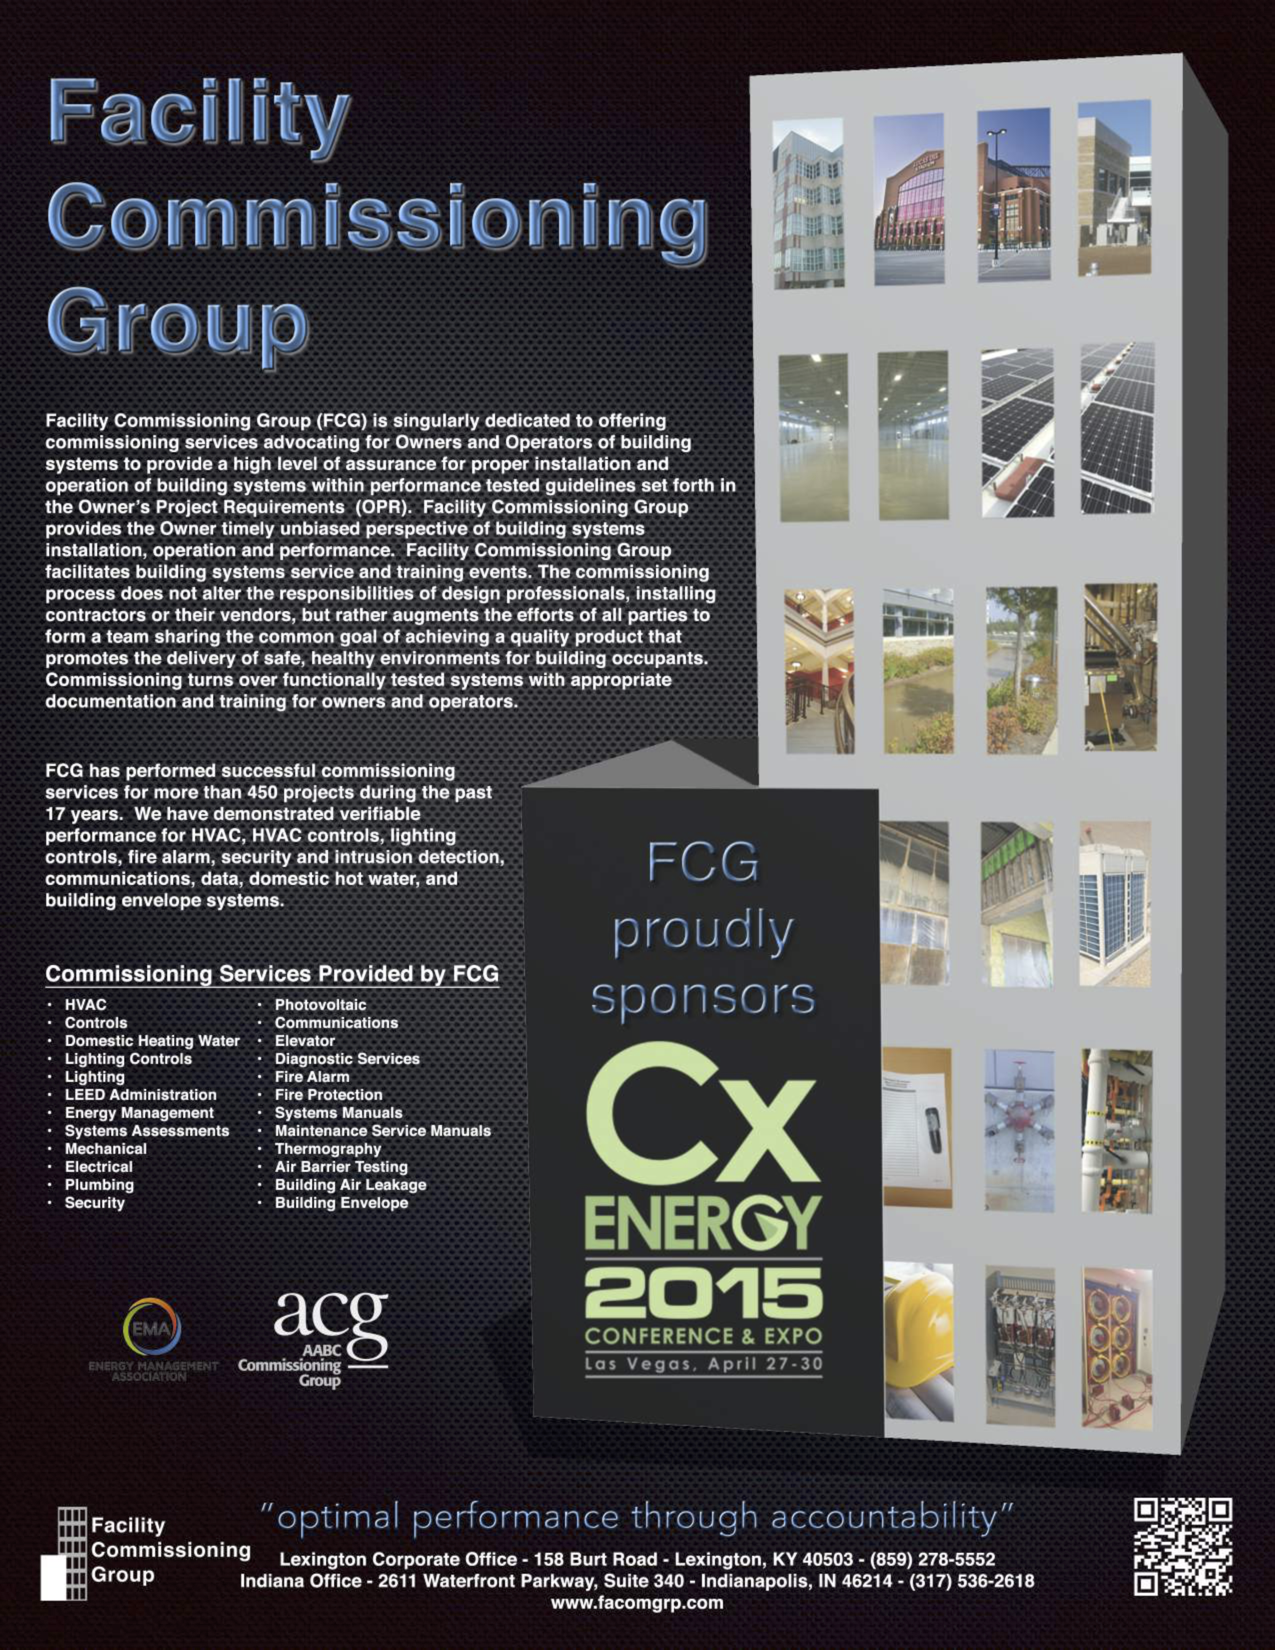 FCG_CxEnergy15_Ad_20150220.compressed